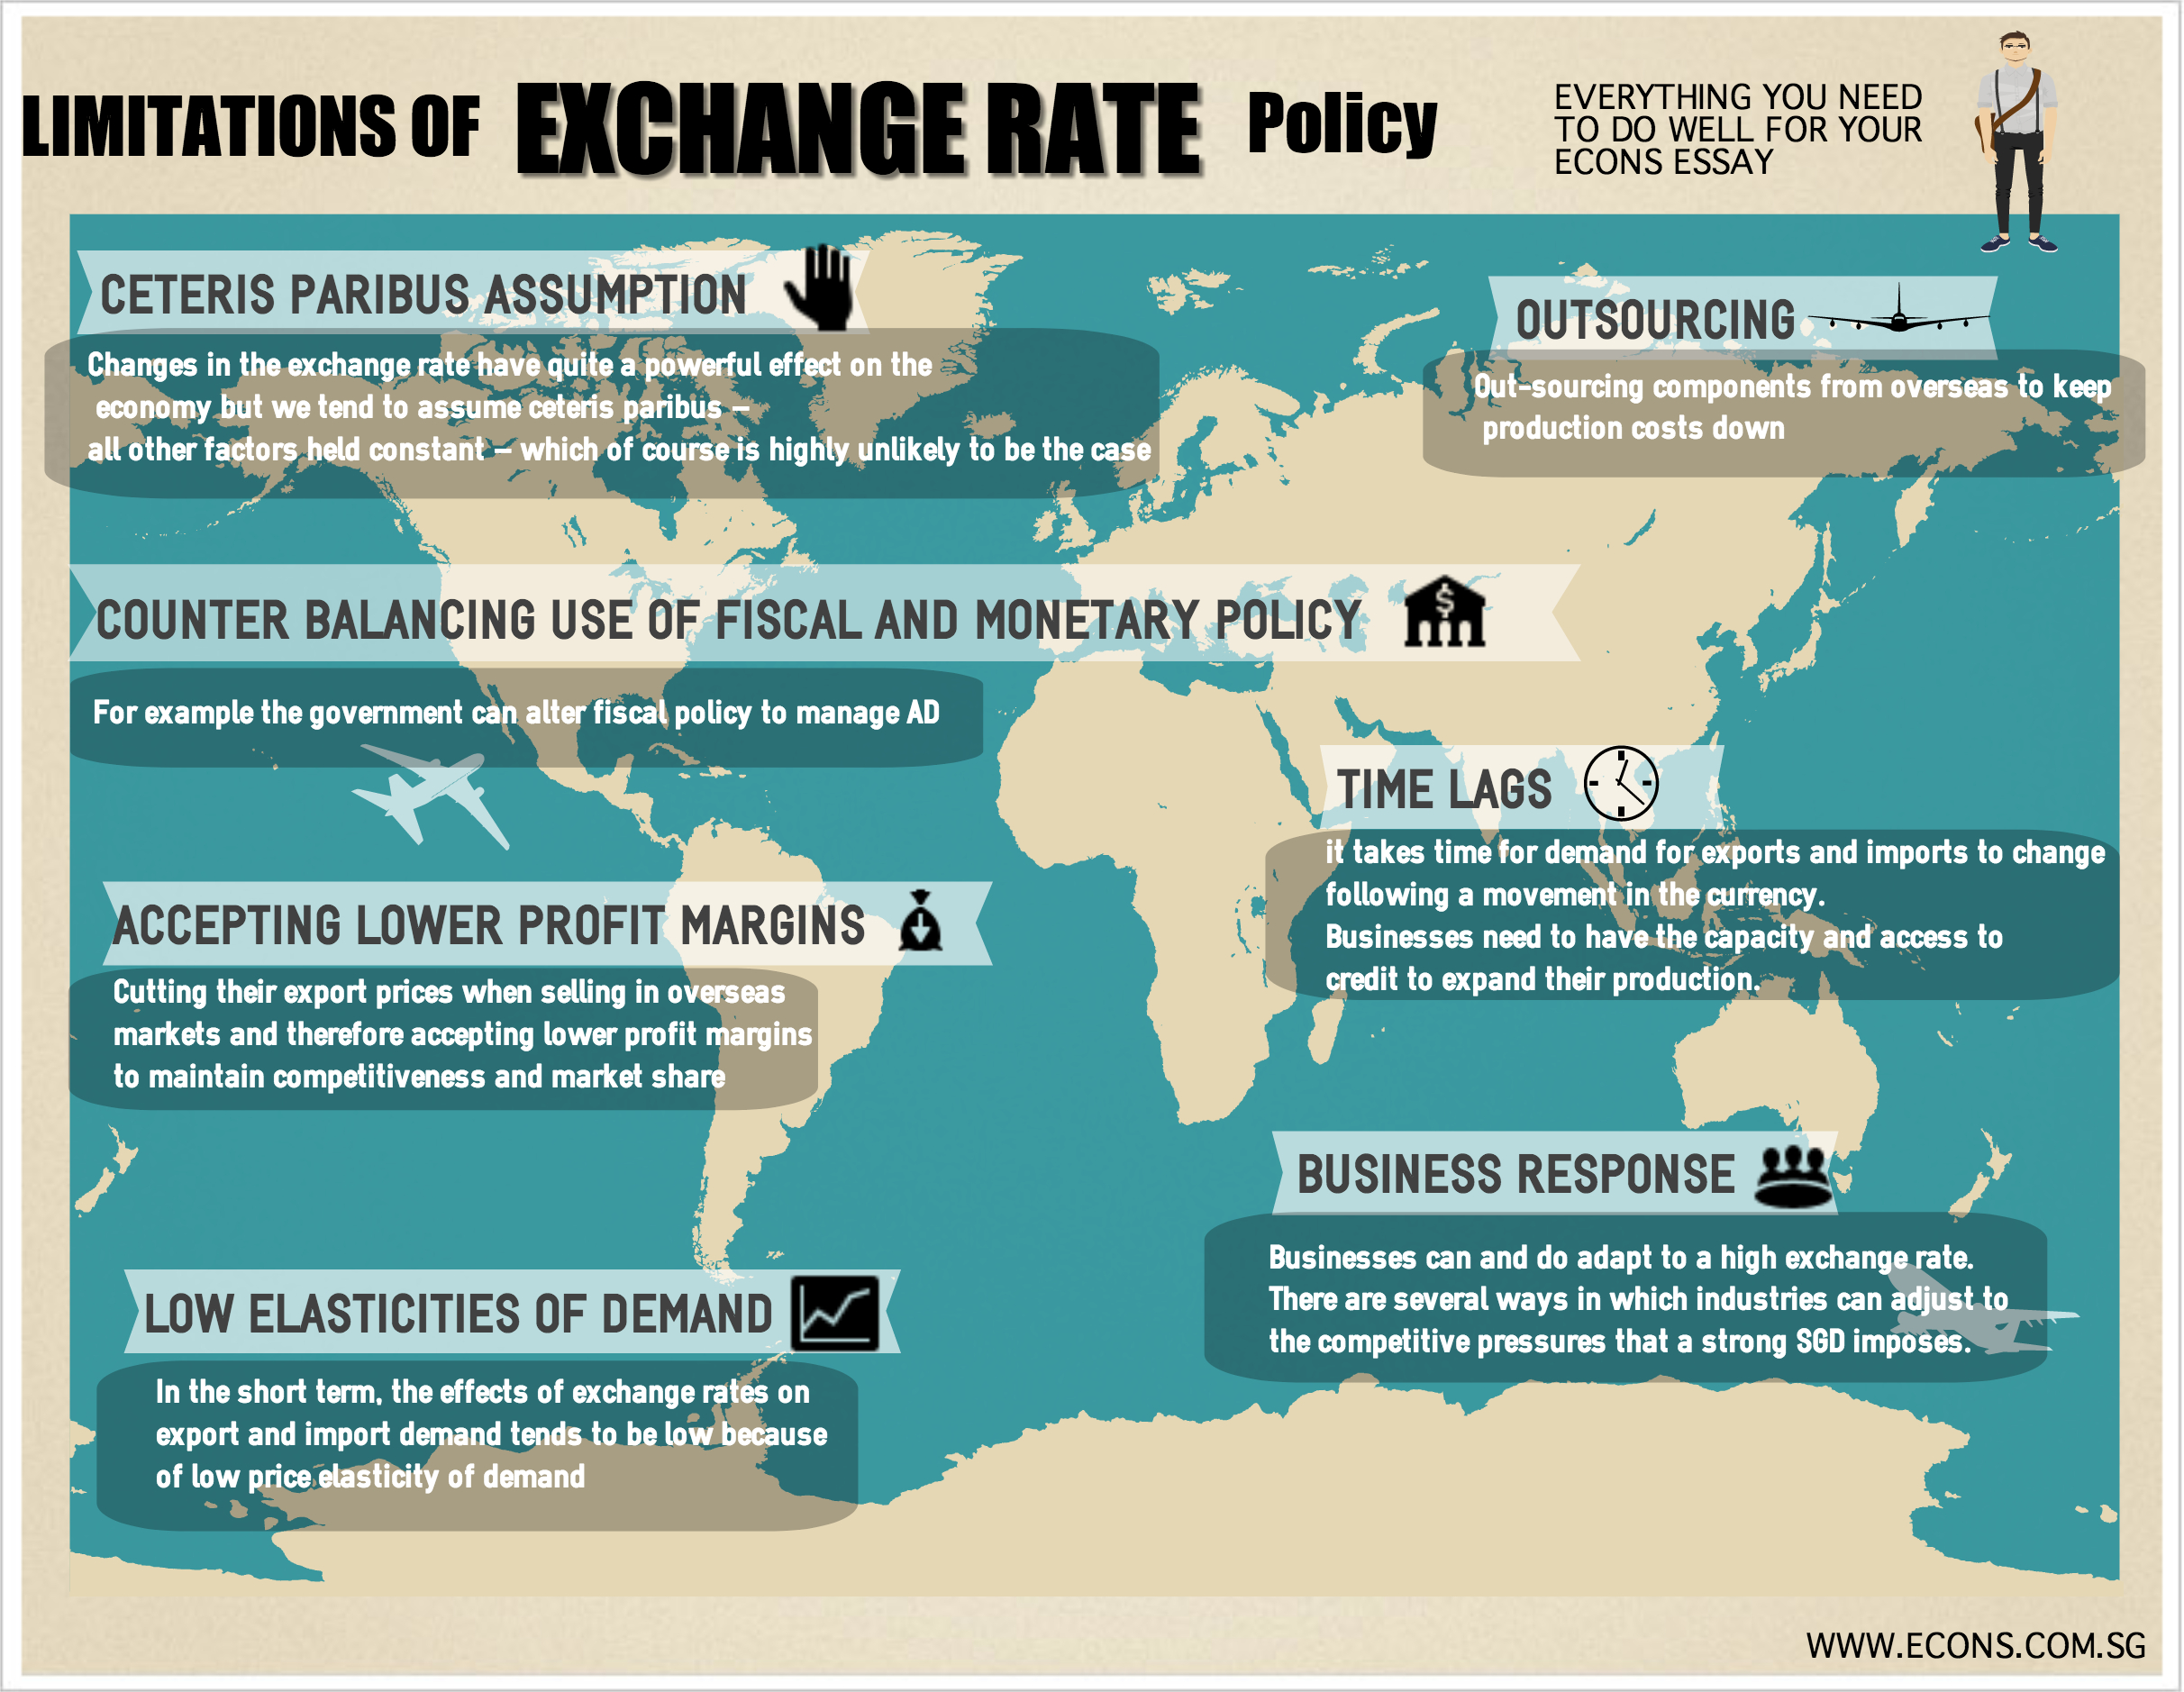 limitations of exchange rate policy infographic economics limitationsofexchangeratepolicy